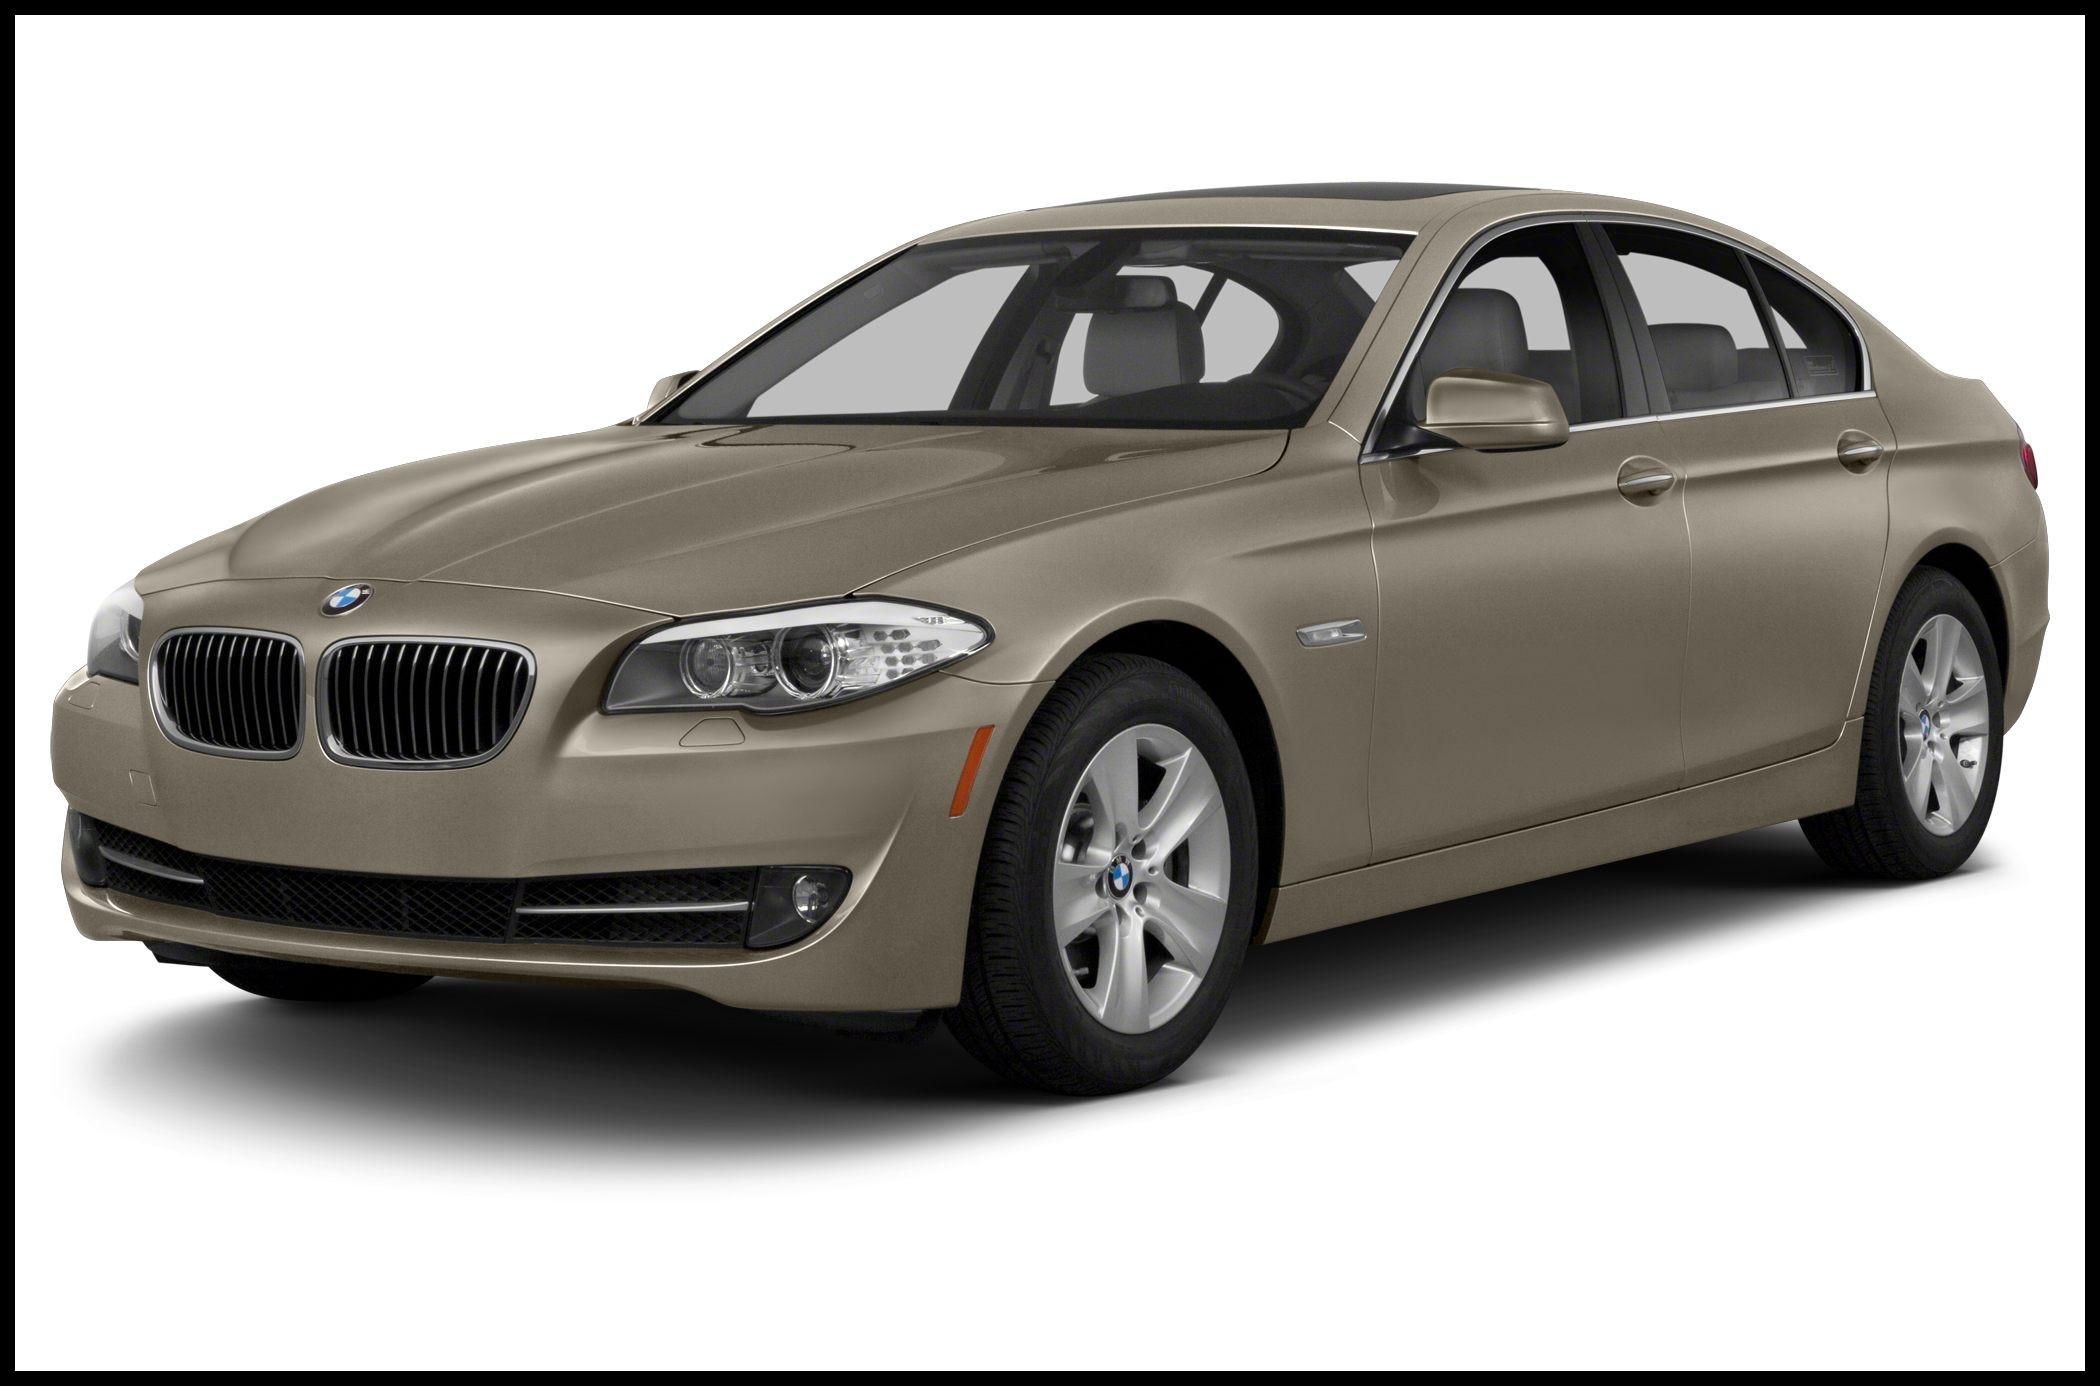 Bmw 5 Series Build and Price Beautiful 2013 Bmw 528 I 4dr Rear Wheel Drive Sedan